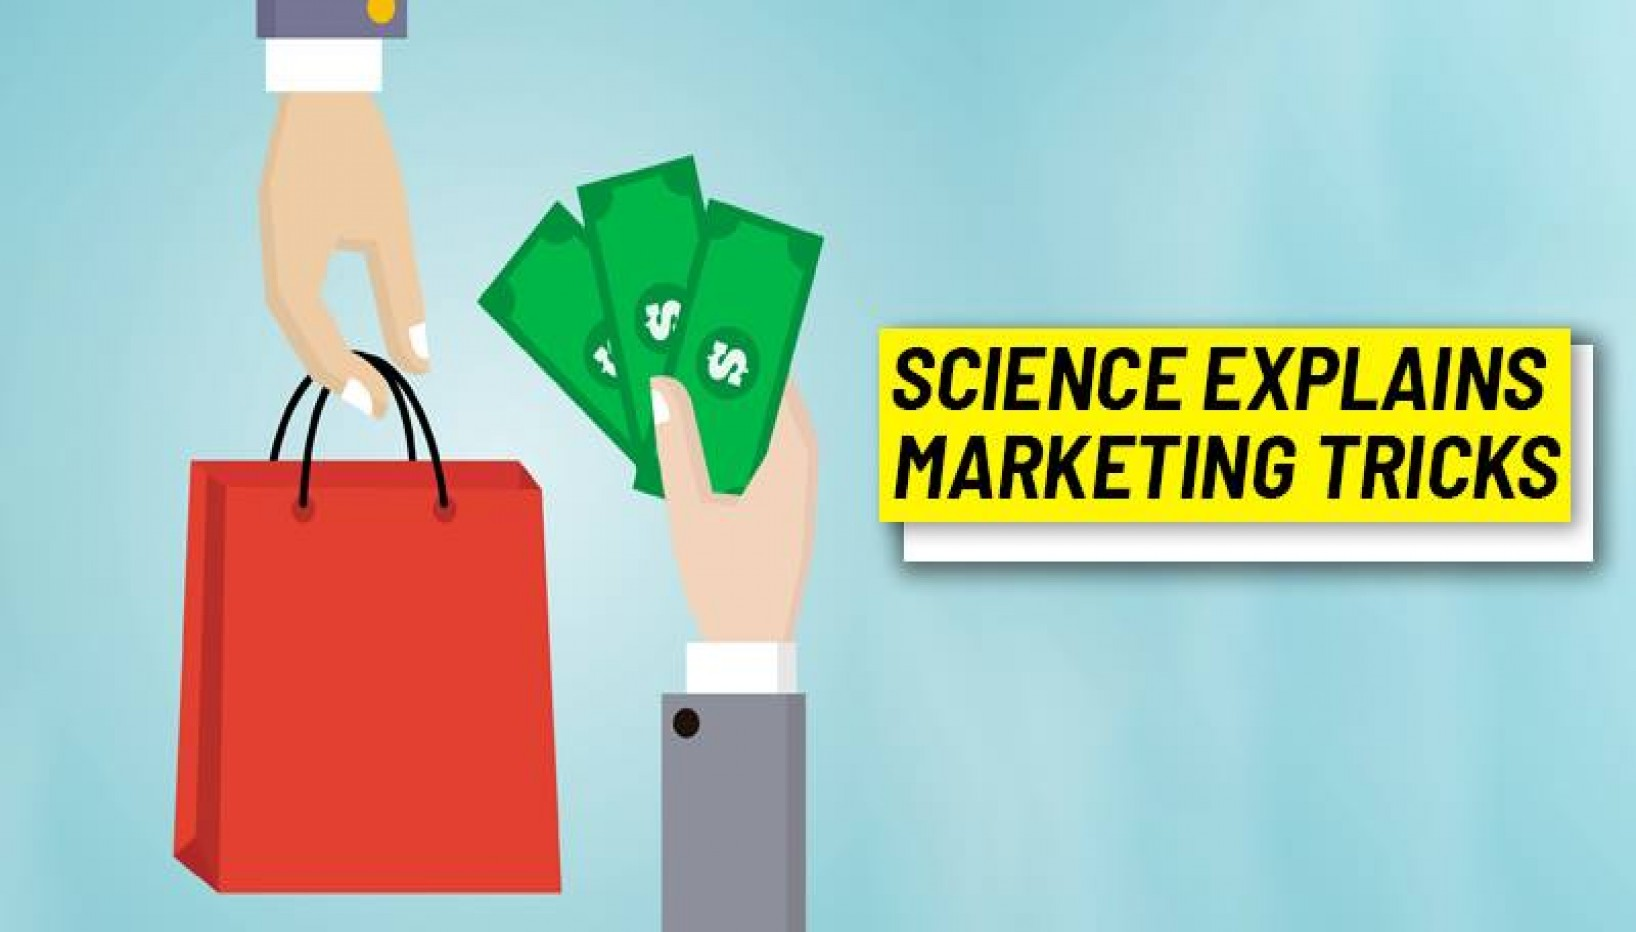 9 Marketing Tricks We Unknowingly Fall For Every Day